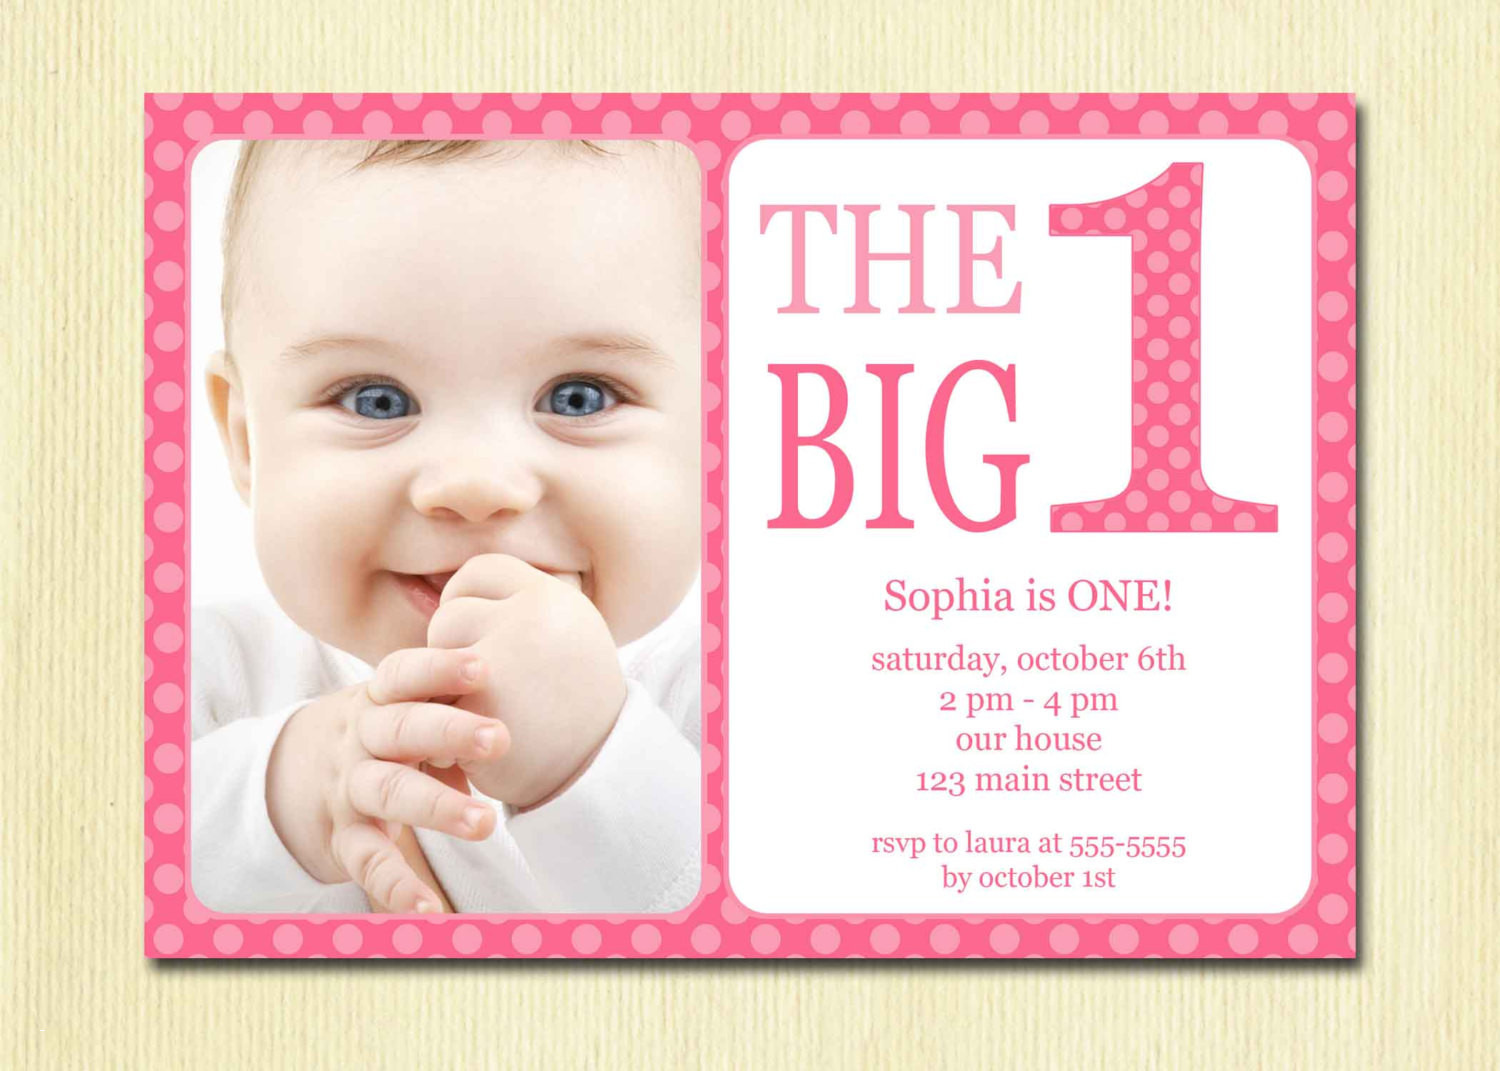 1st birthday girl message ; message%2520for%25201st%2520birthday%2520girl%2520;%25201st-birthday-girl-invitation-templates-unique-15-inspirational-1st-birthday-invitation-message-stock-of-1st-birthday-girl-invitation-templates